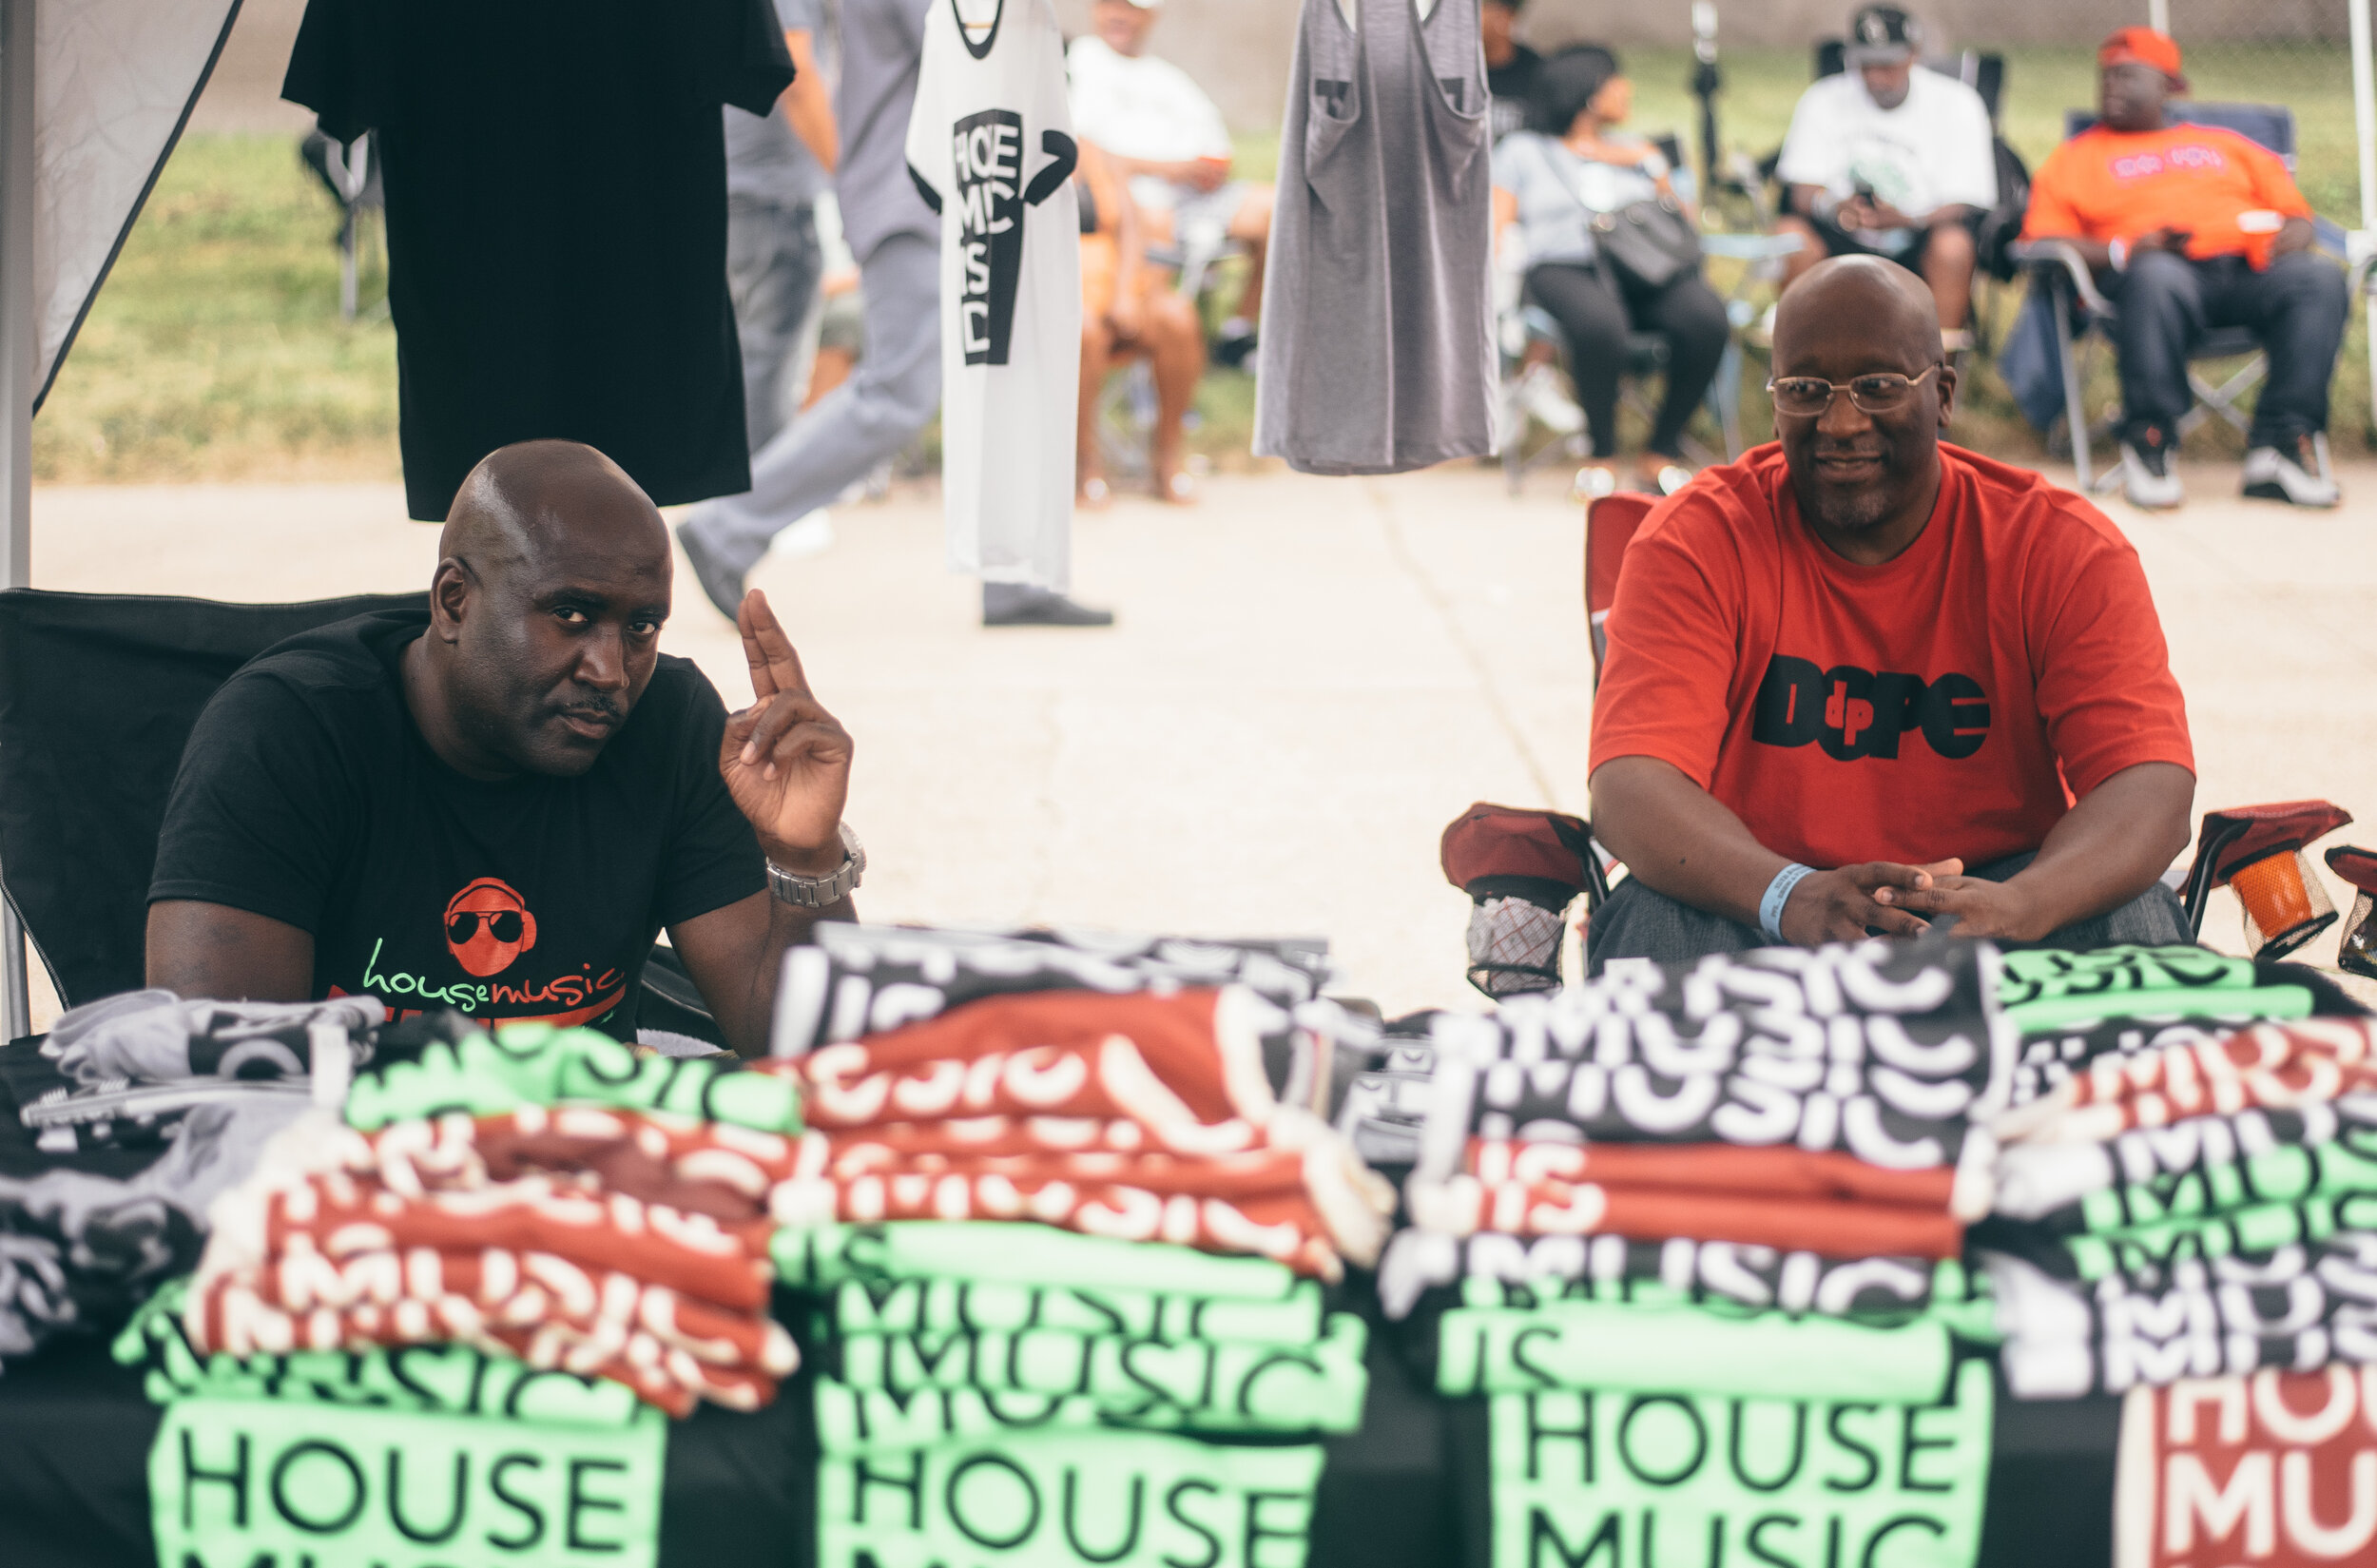 There were numerous local vendors selling merchandise from food to clothing at 3YB House Fest.